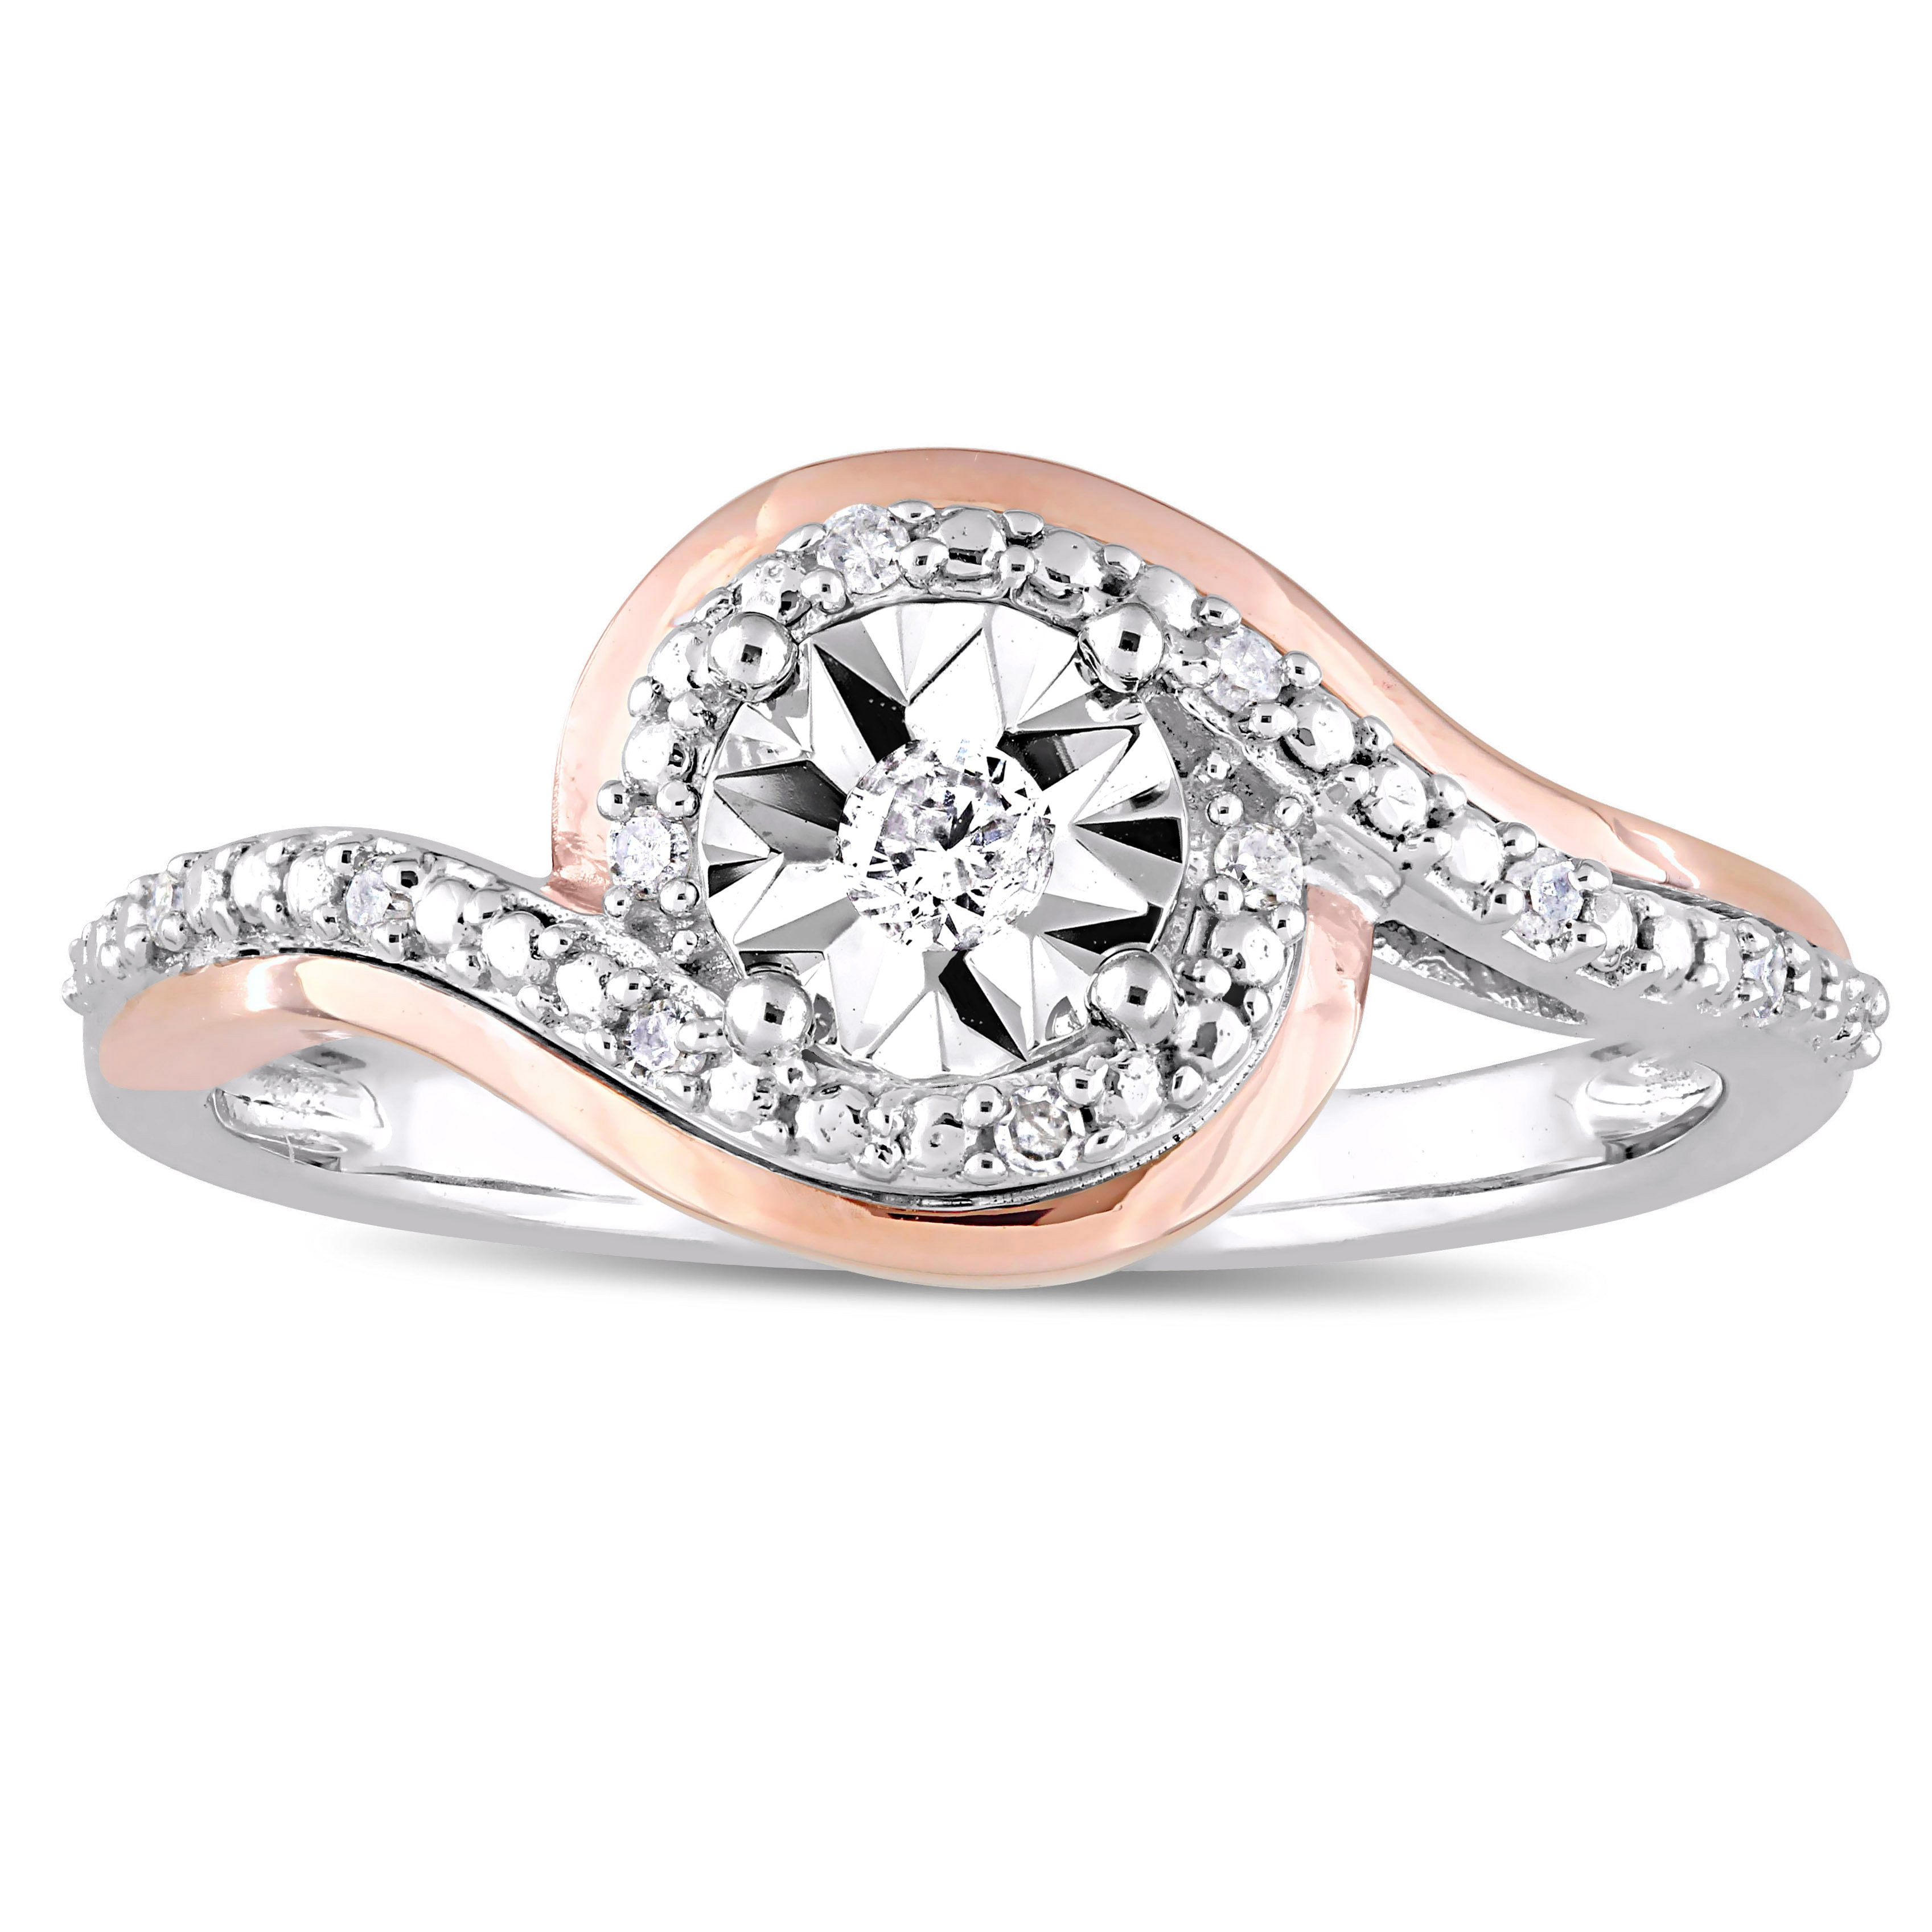 Miadora 2 Tone 10k White And Rose Gold 1 10ct Tdw Diamond Crossover Bypass Engagement Ring Overstock 16736985